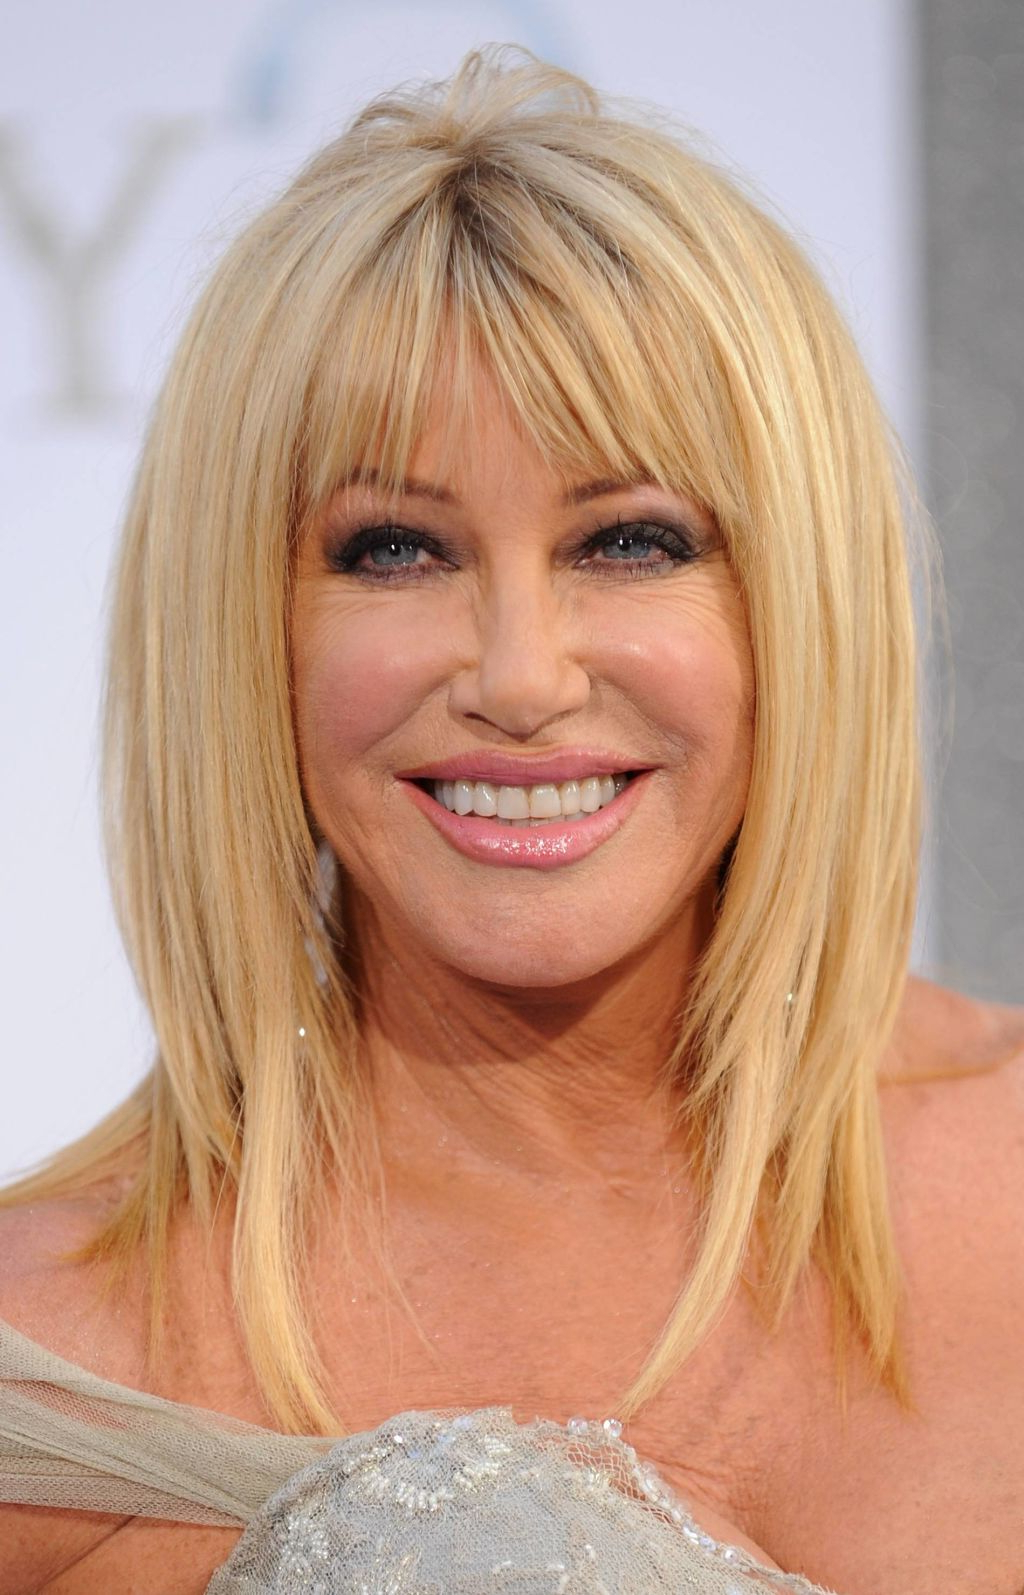 Well Known Layered Medium Hairstyles With Bangs With Medium Hairstyle : Medium Length Layered Haircuts With Bangs (View 14 of 20)